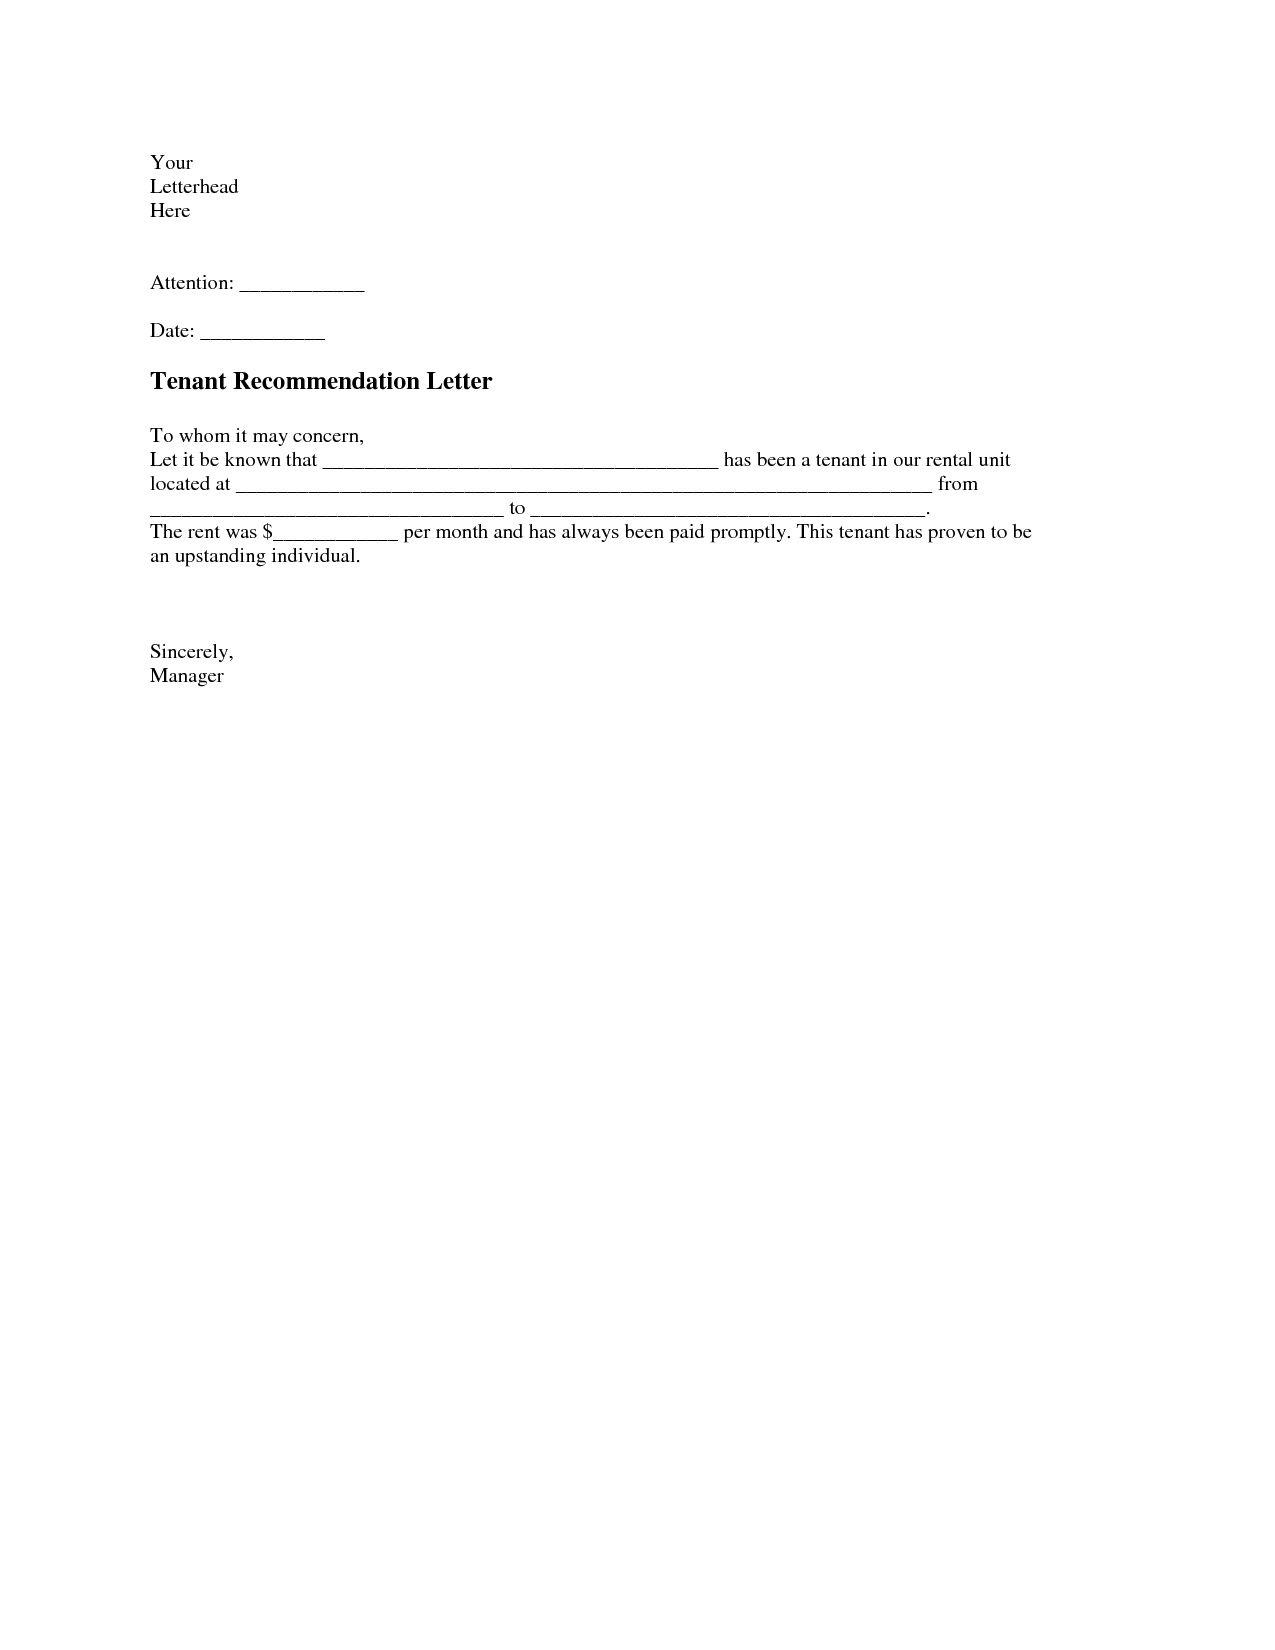 rental reference letter from friend template Collection-Tenant Re mendation Letter A tenant re mendation letter is usually required by a serious landlord from previous landlords to ensure that the potential 13-h